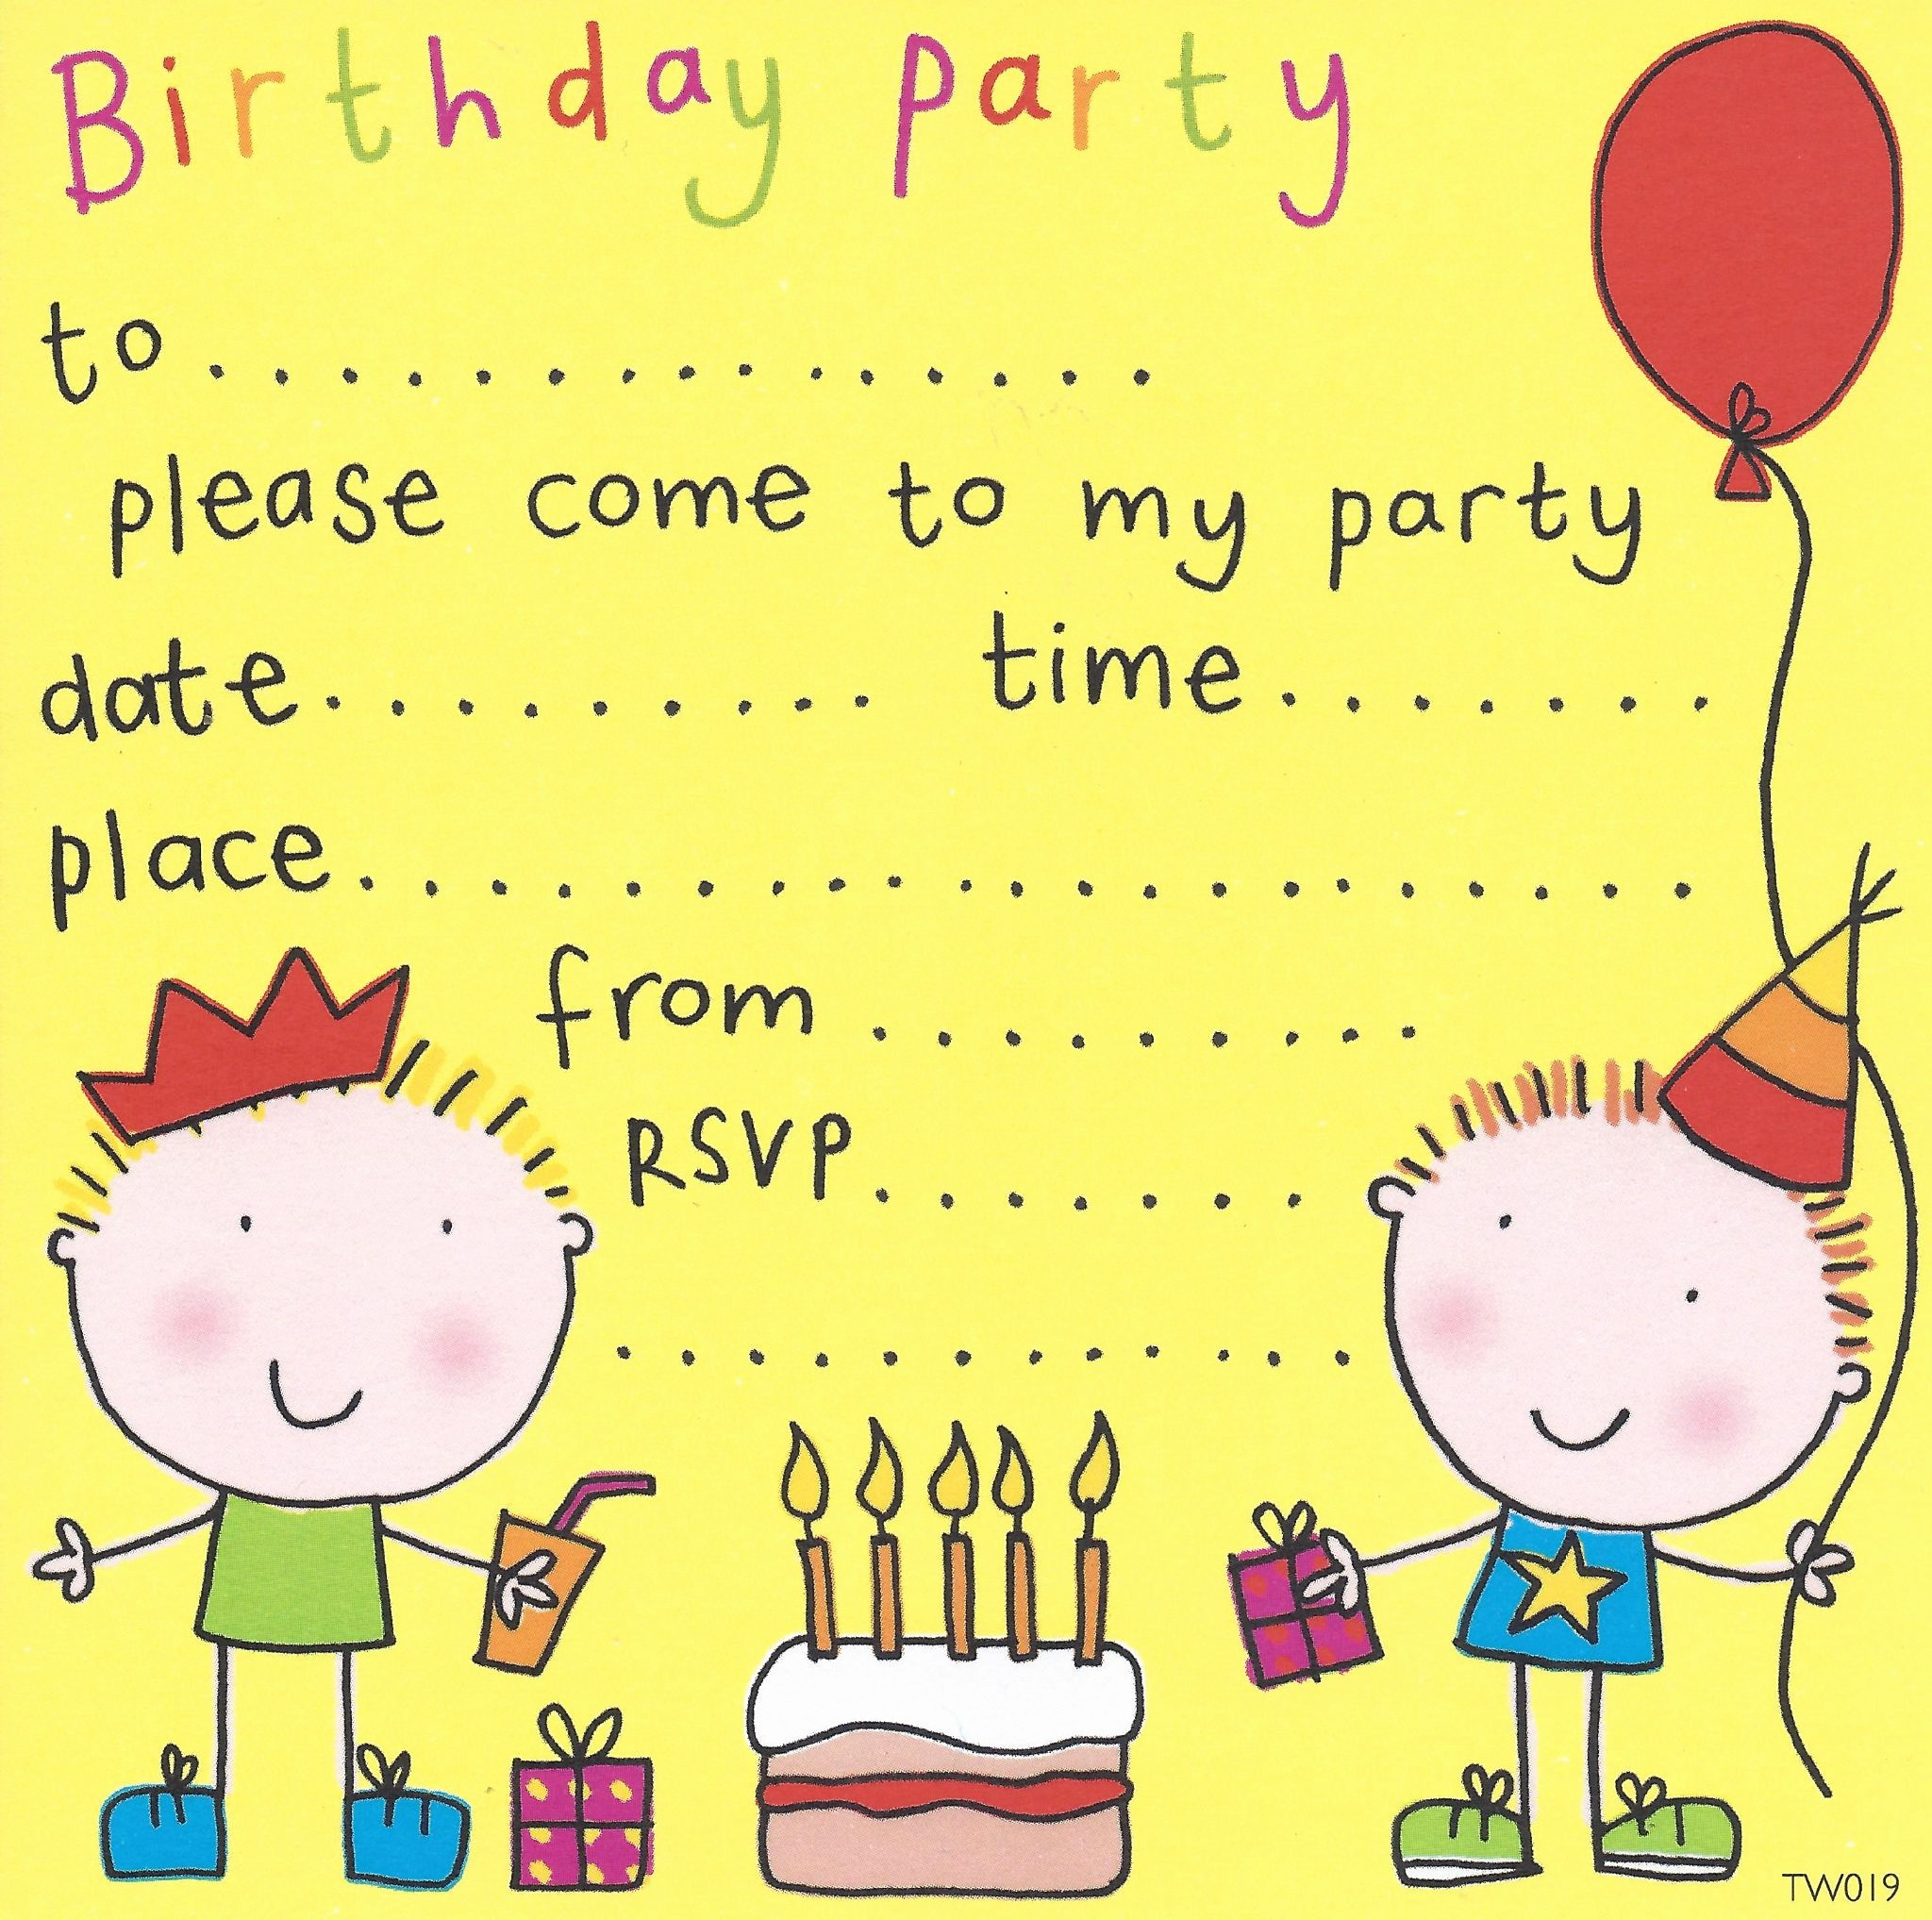 Birthday Party Invitation Card Template Inspirational Free Birthday Party Invites for Kids – Free Printable